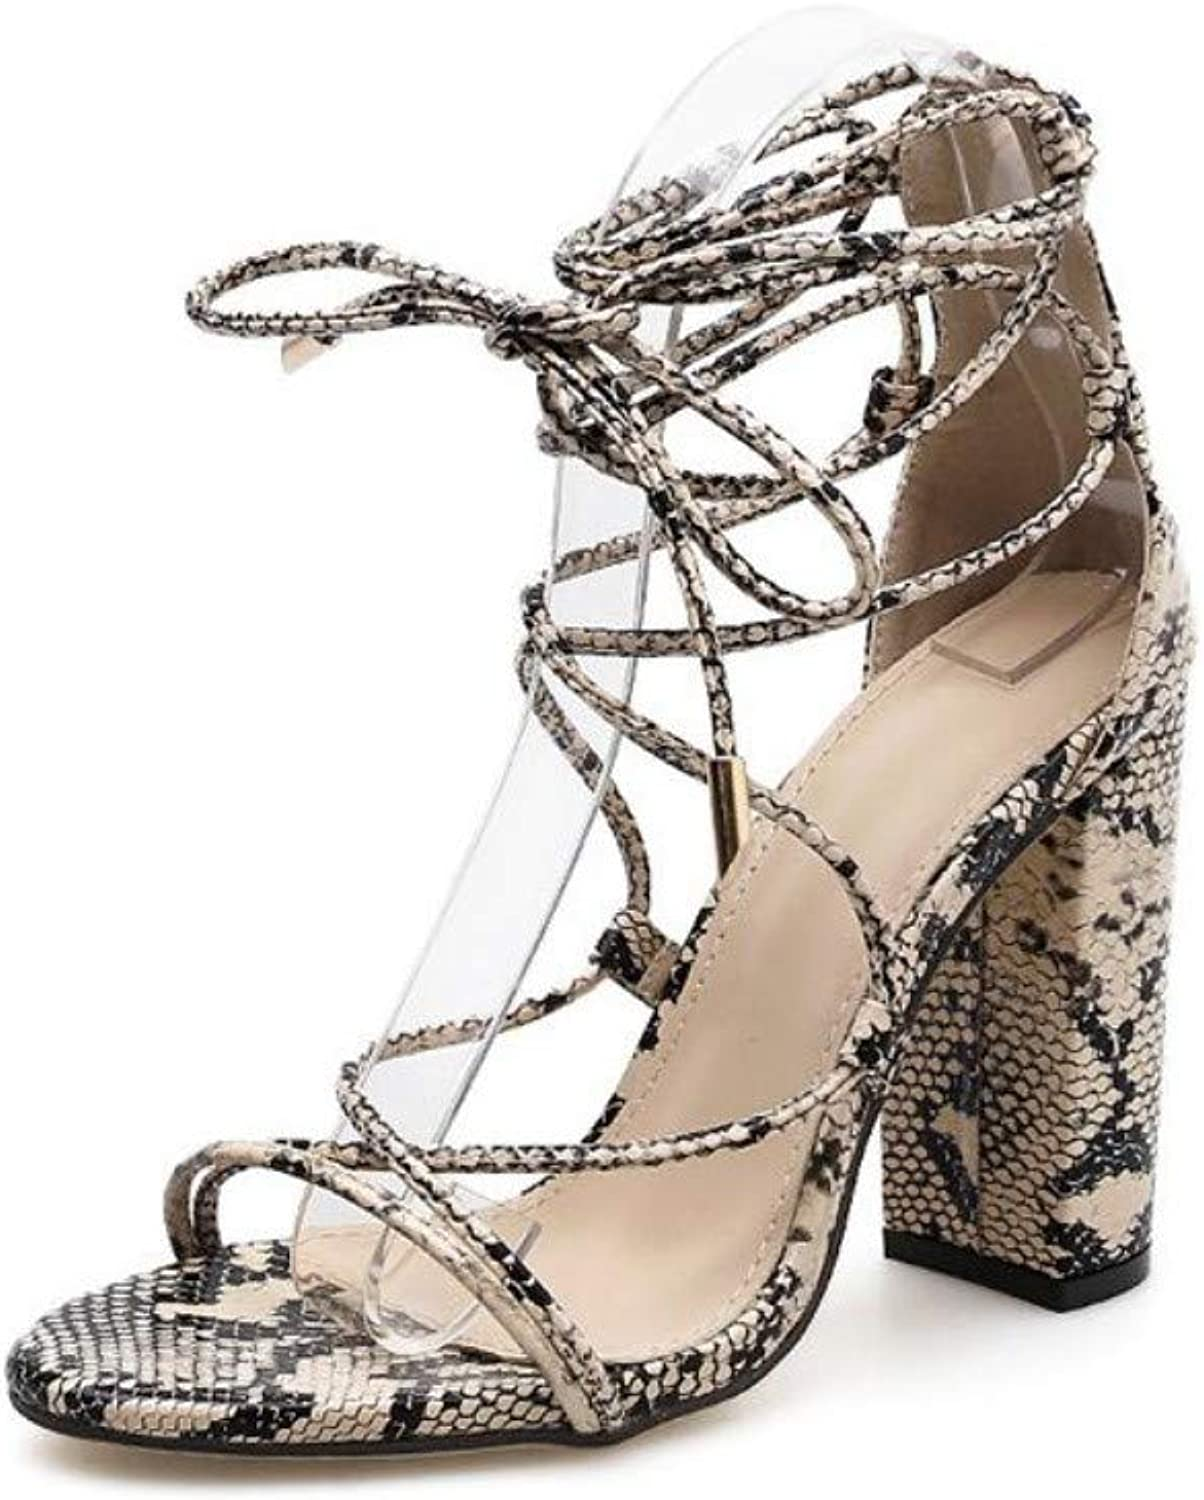 JQfashion Women's High-Heeled shoes Surnamed High Snake Pattern Hollow Straps High-Heeled Sandals Thick and Tall